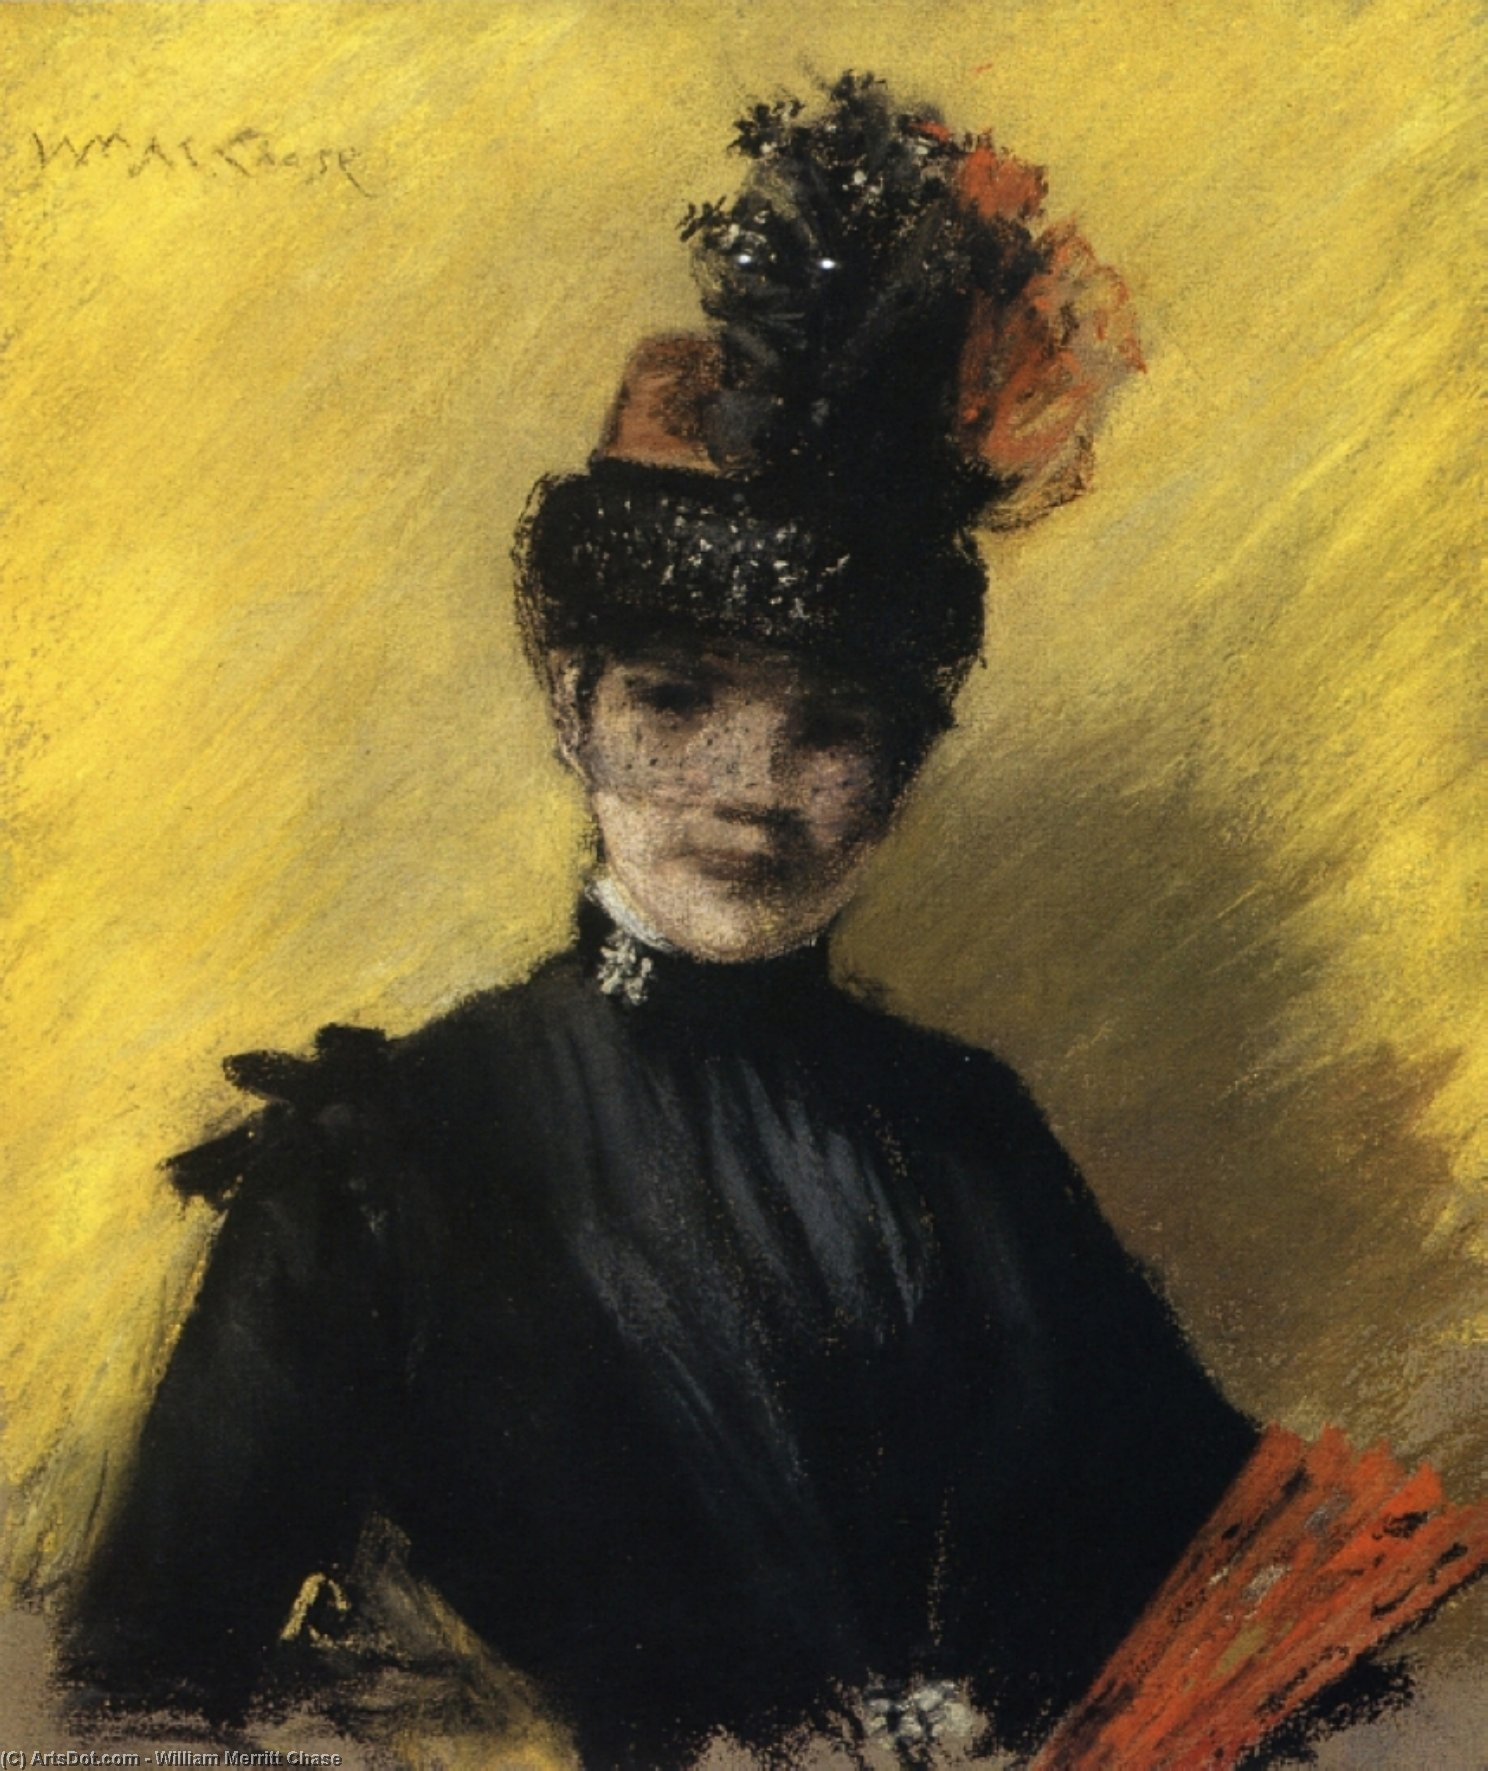 Study of Black against Yello, 1886 by William Merritt Chase (1849-1916, United States)